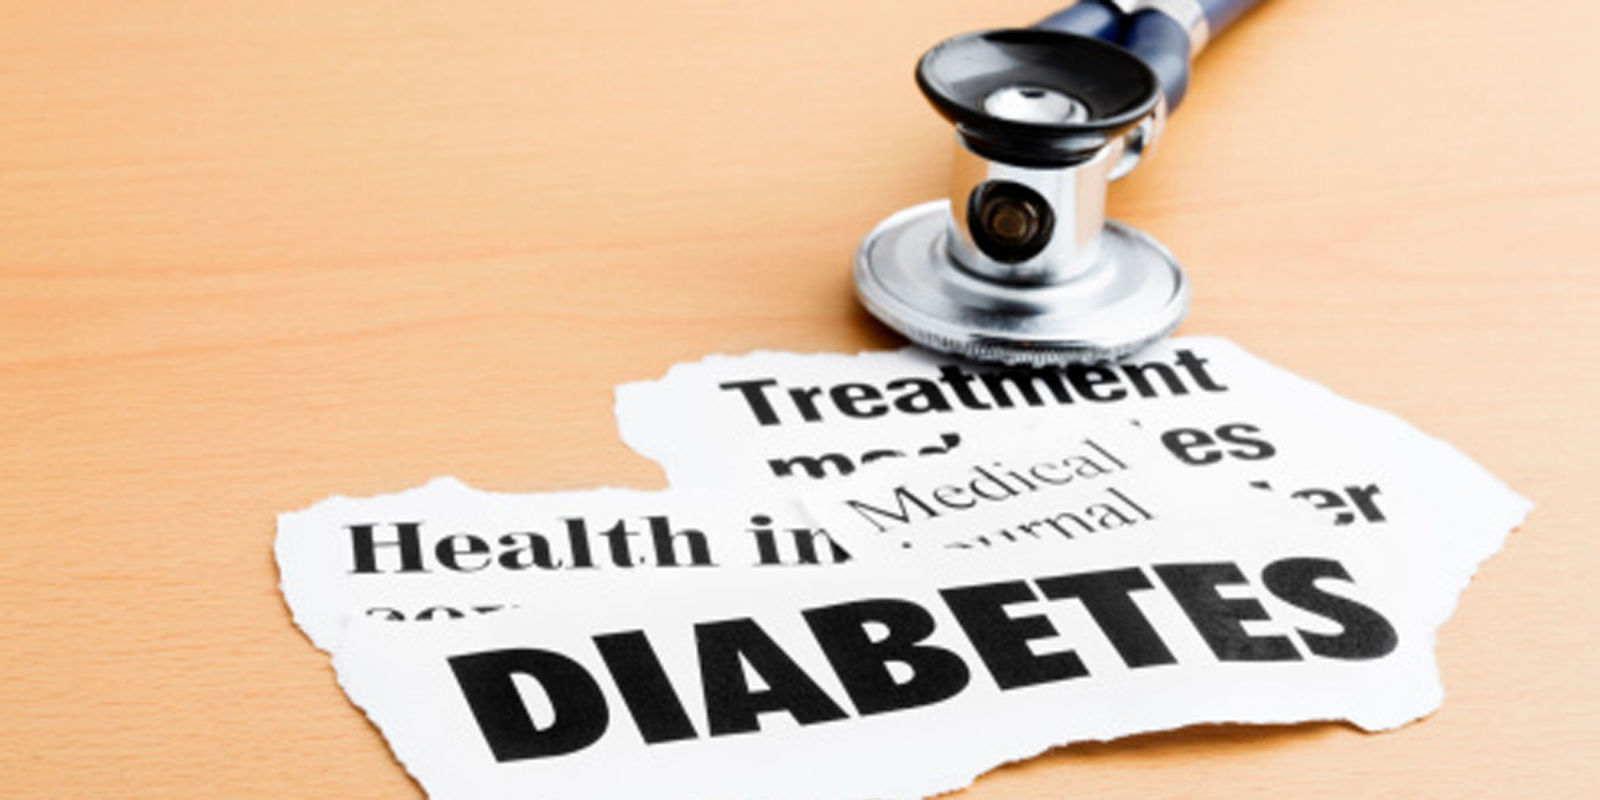 Type 2 Diabetes: What is it? Symptoms, Diagnosis, Treatment, and More...